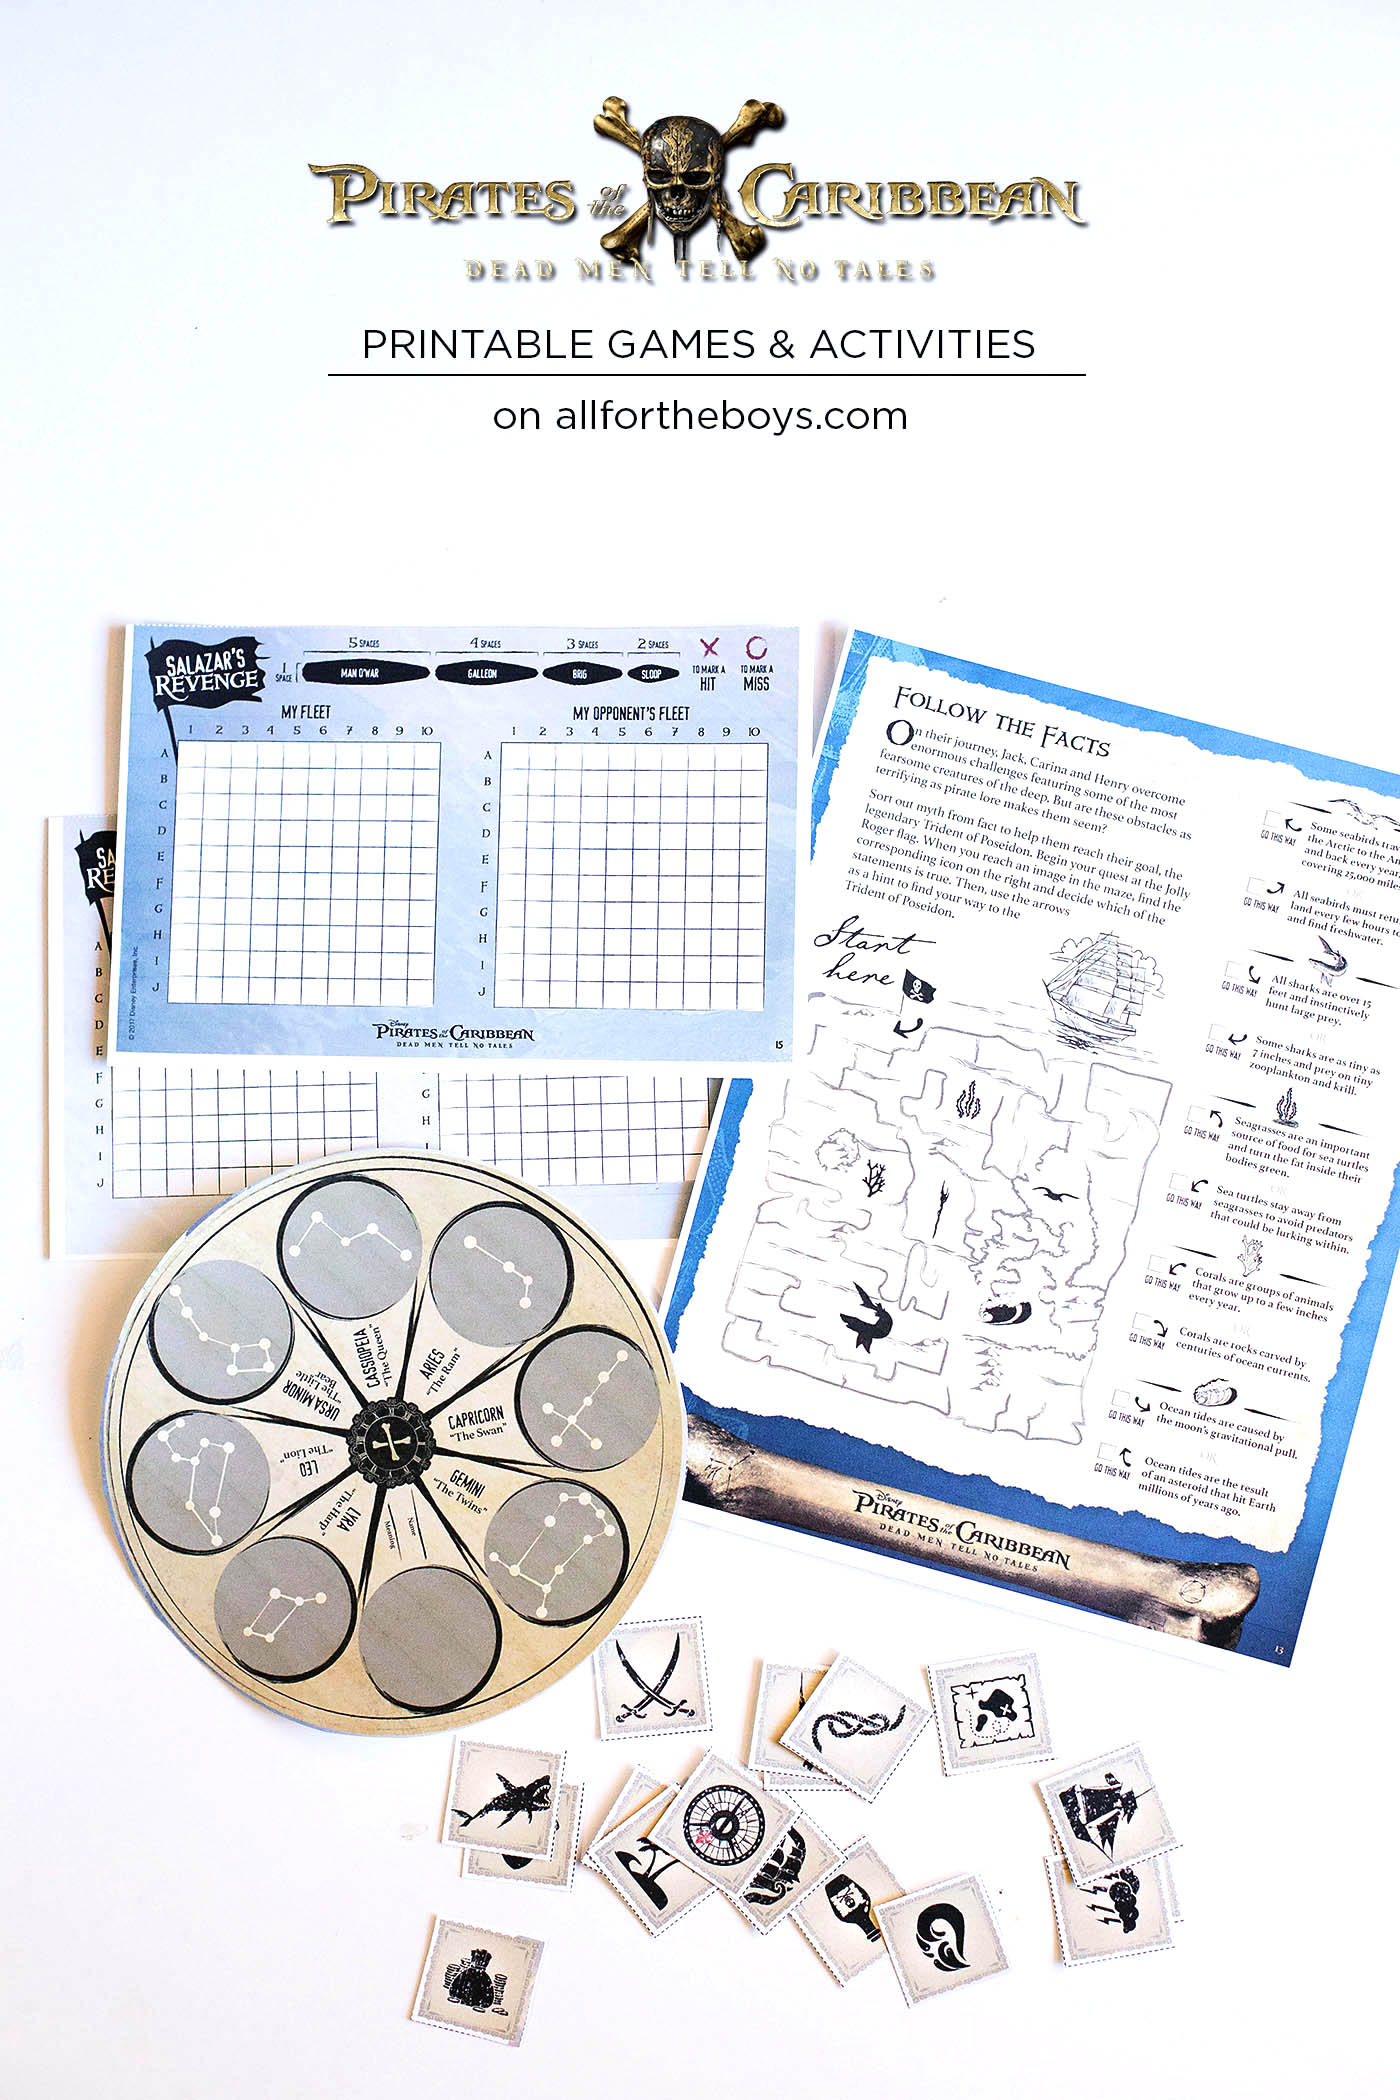 Pirates of the Caribbean: Dead Men Tell No Tales printable games and activities like star gazing indoors!